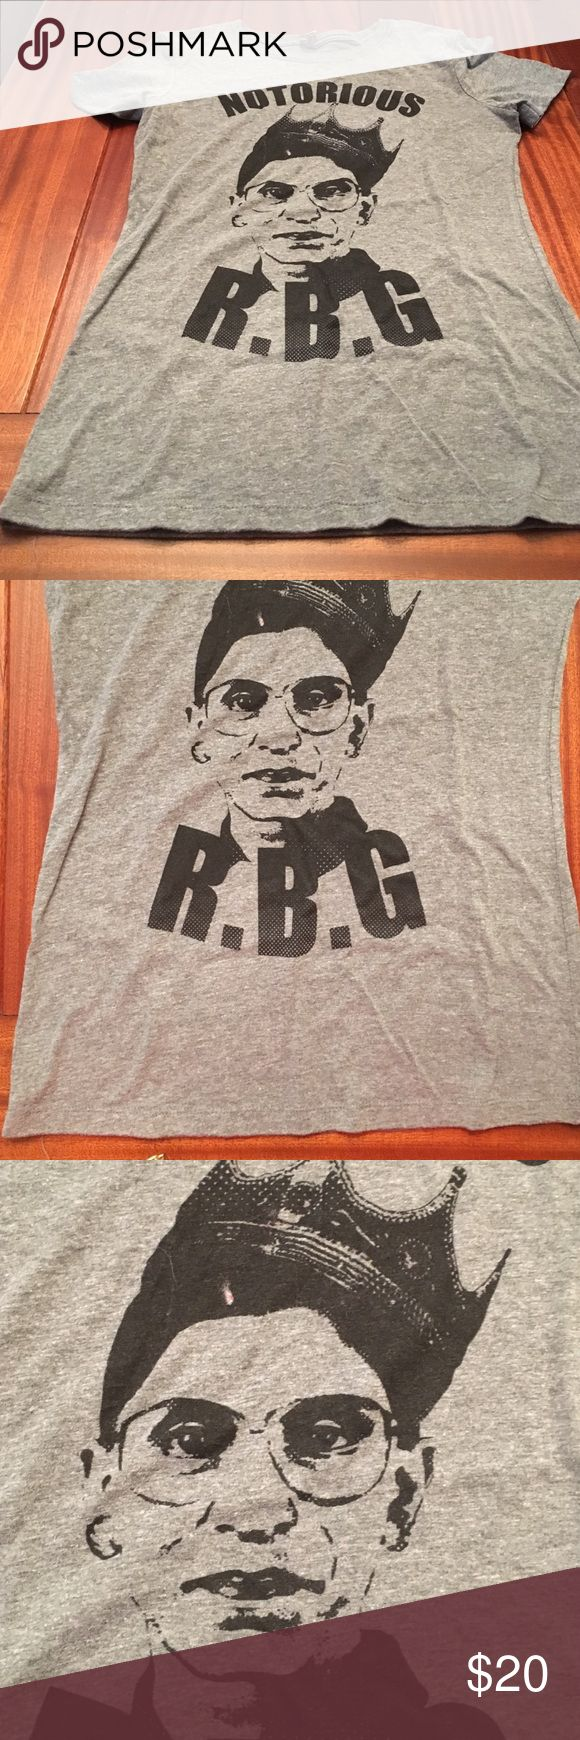 Notorious RBG shirt BNWOT Notorious R.B.G shirt from D.C. women's March Tops Tees - Short Sleeve